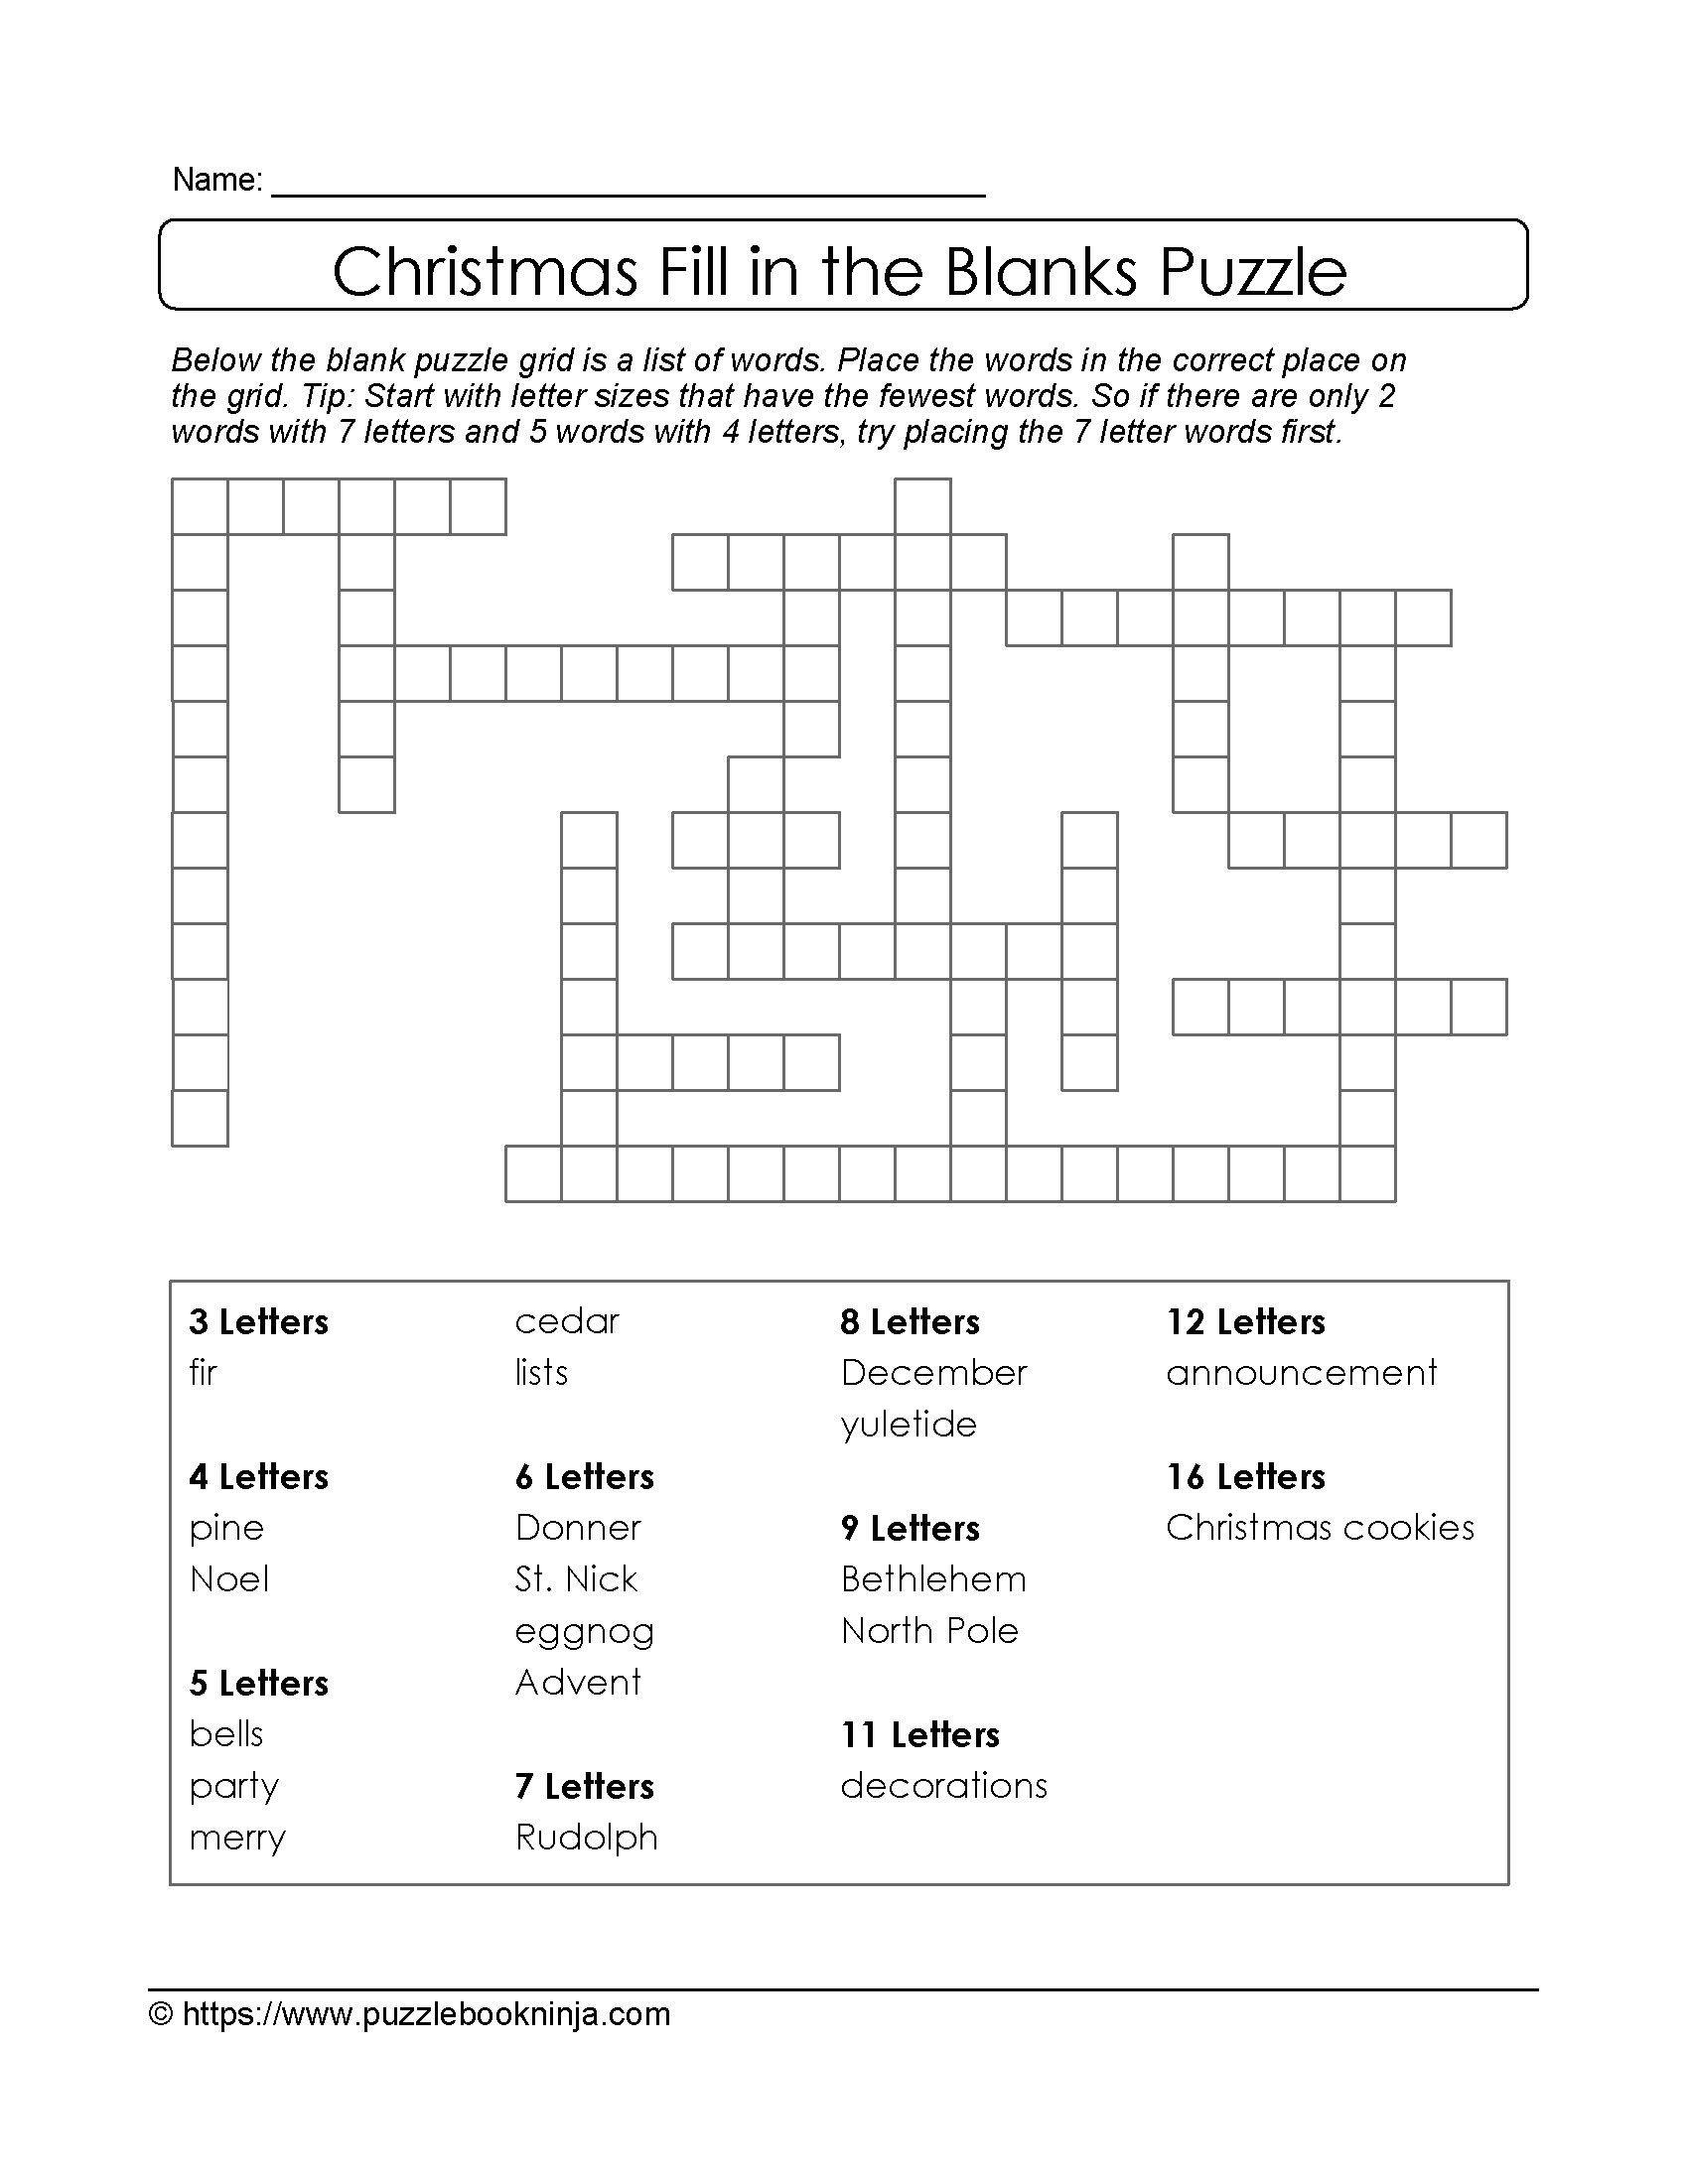 Christmas Printable Puzzle. Free Fill In The Blanks. | Christmas - Printable Crossword Puzzle For 8 Year Old